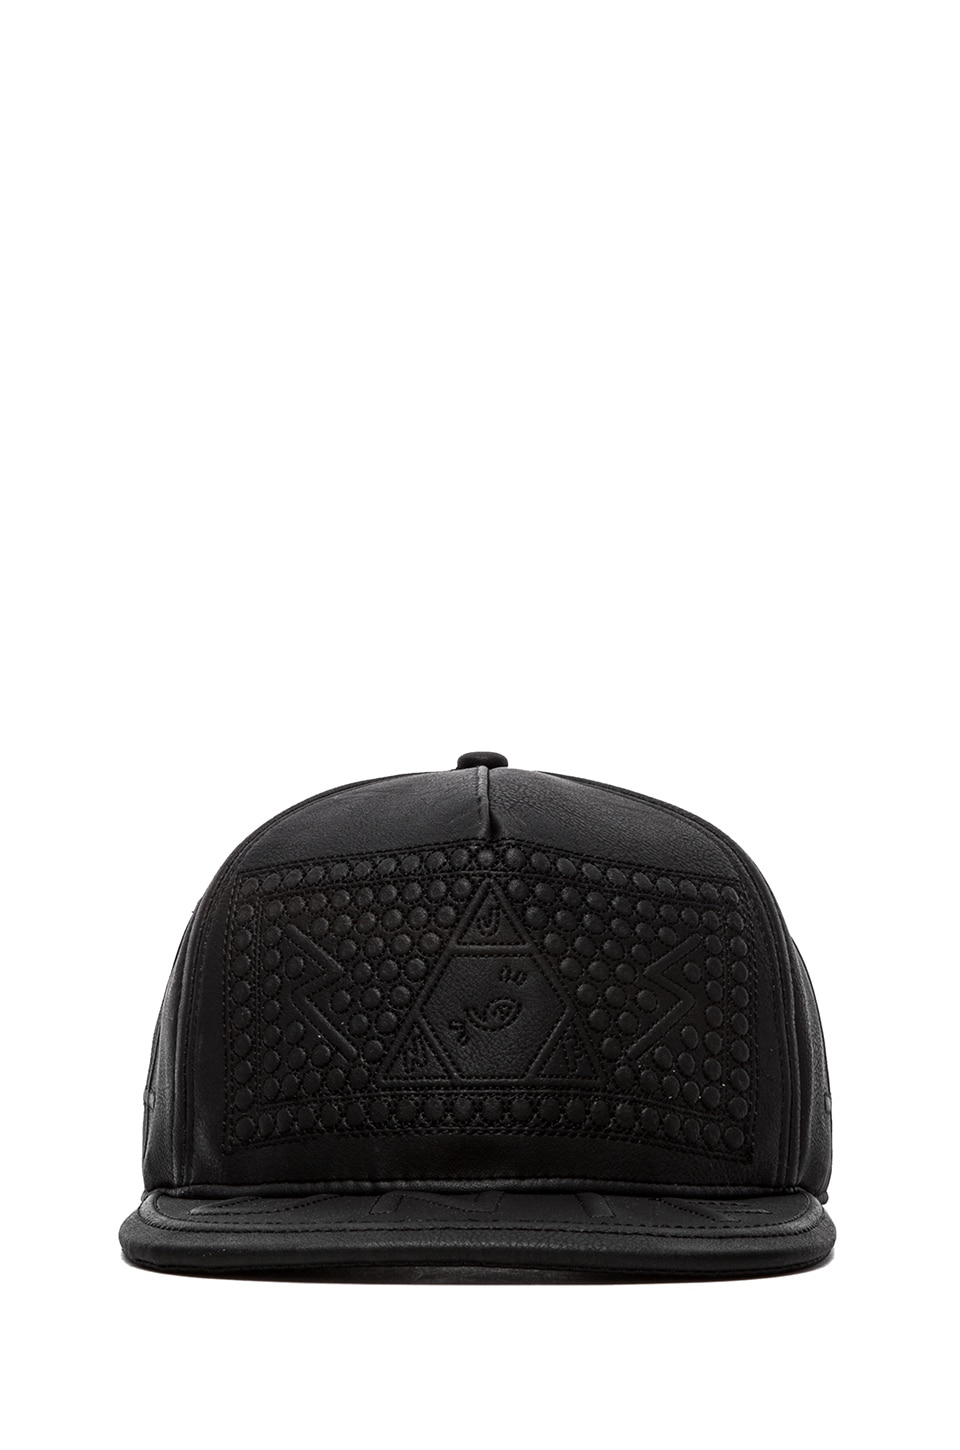 UNIF Braille Hat in Black